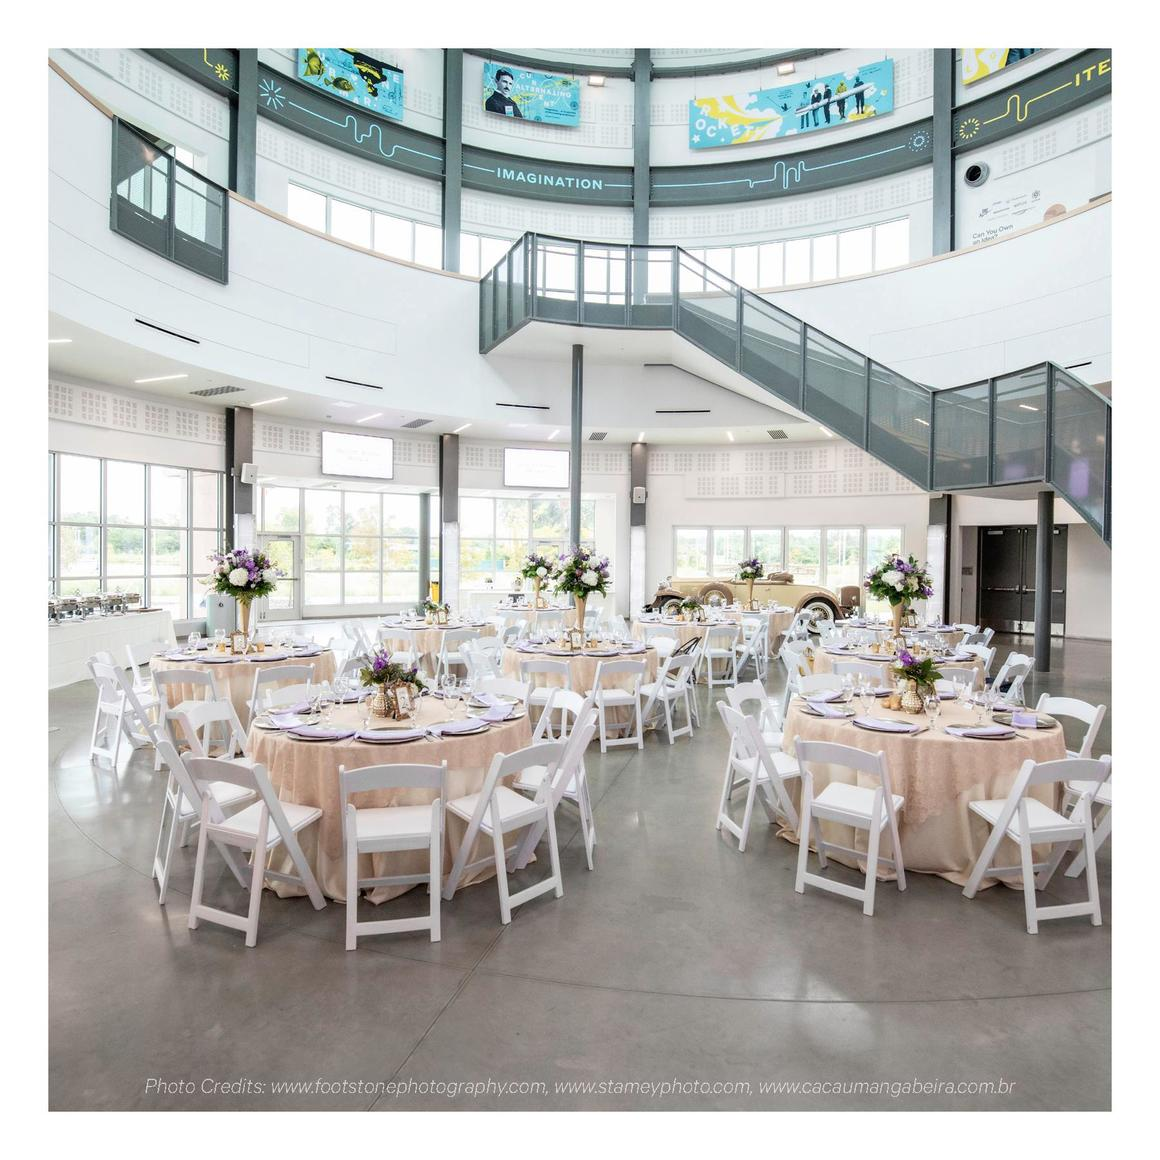 Cade Museum W E D D I N G R E N TA L S Create Your Dream Wedding at The Cade Museum. With breathtaking modern architecture...